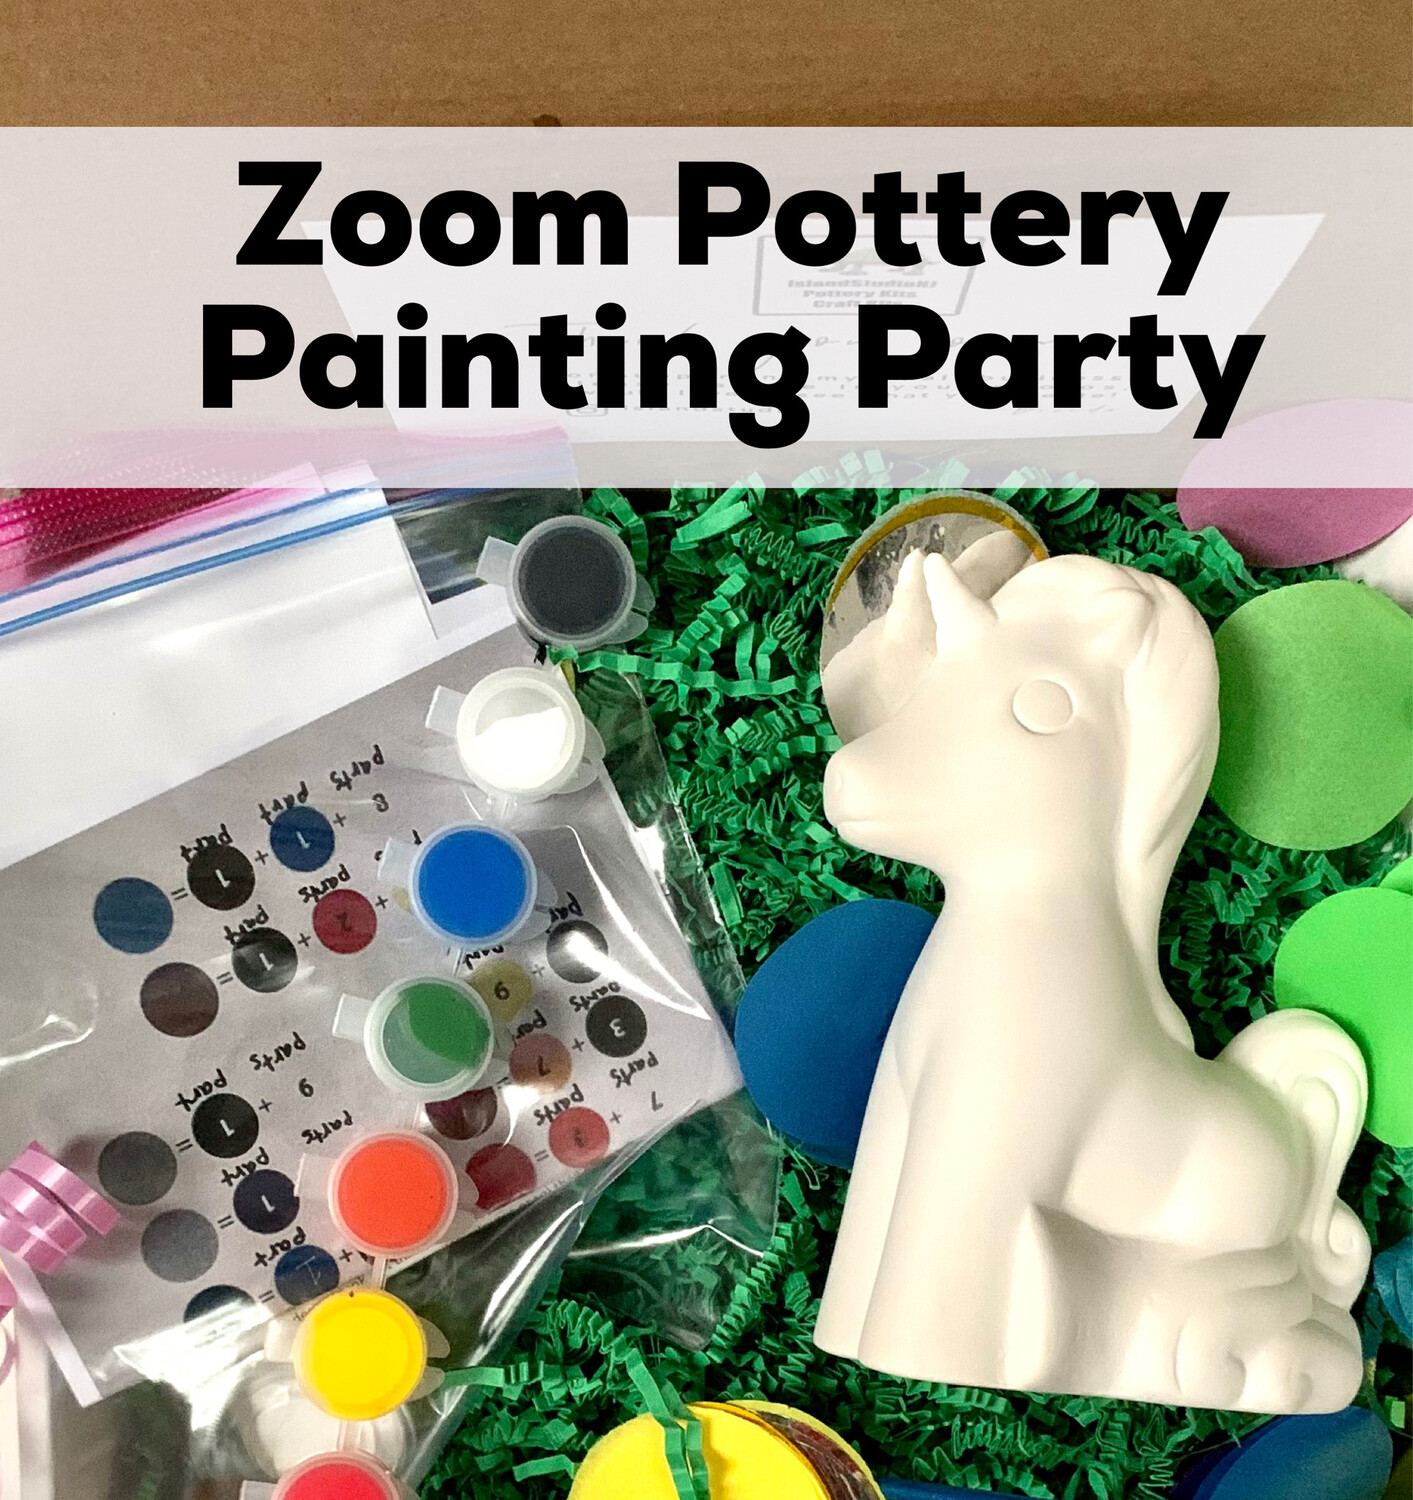 Zoom Pottery Painting Party July 20, 2021 from 3-4:30pm - Free With Pottery Purchase